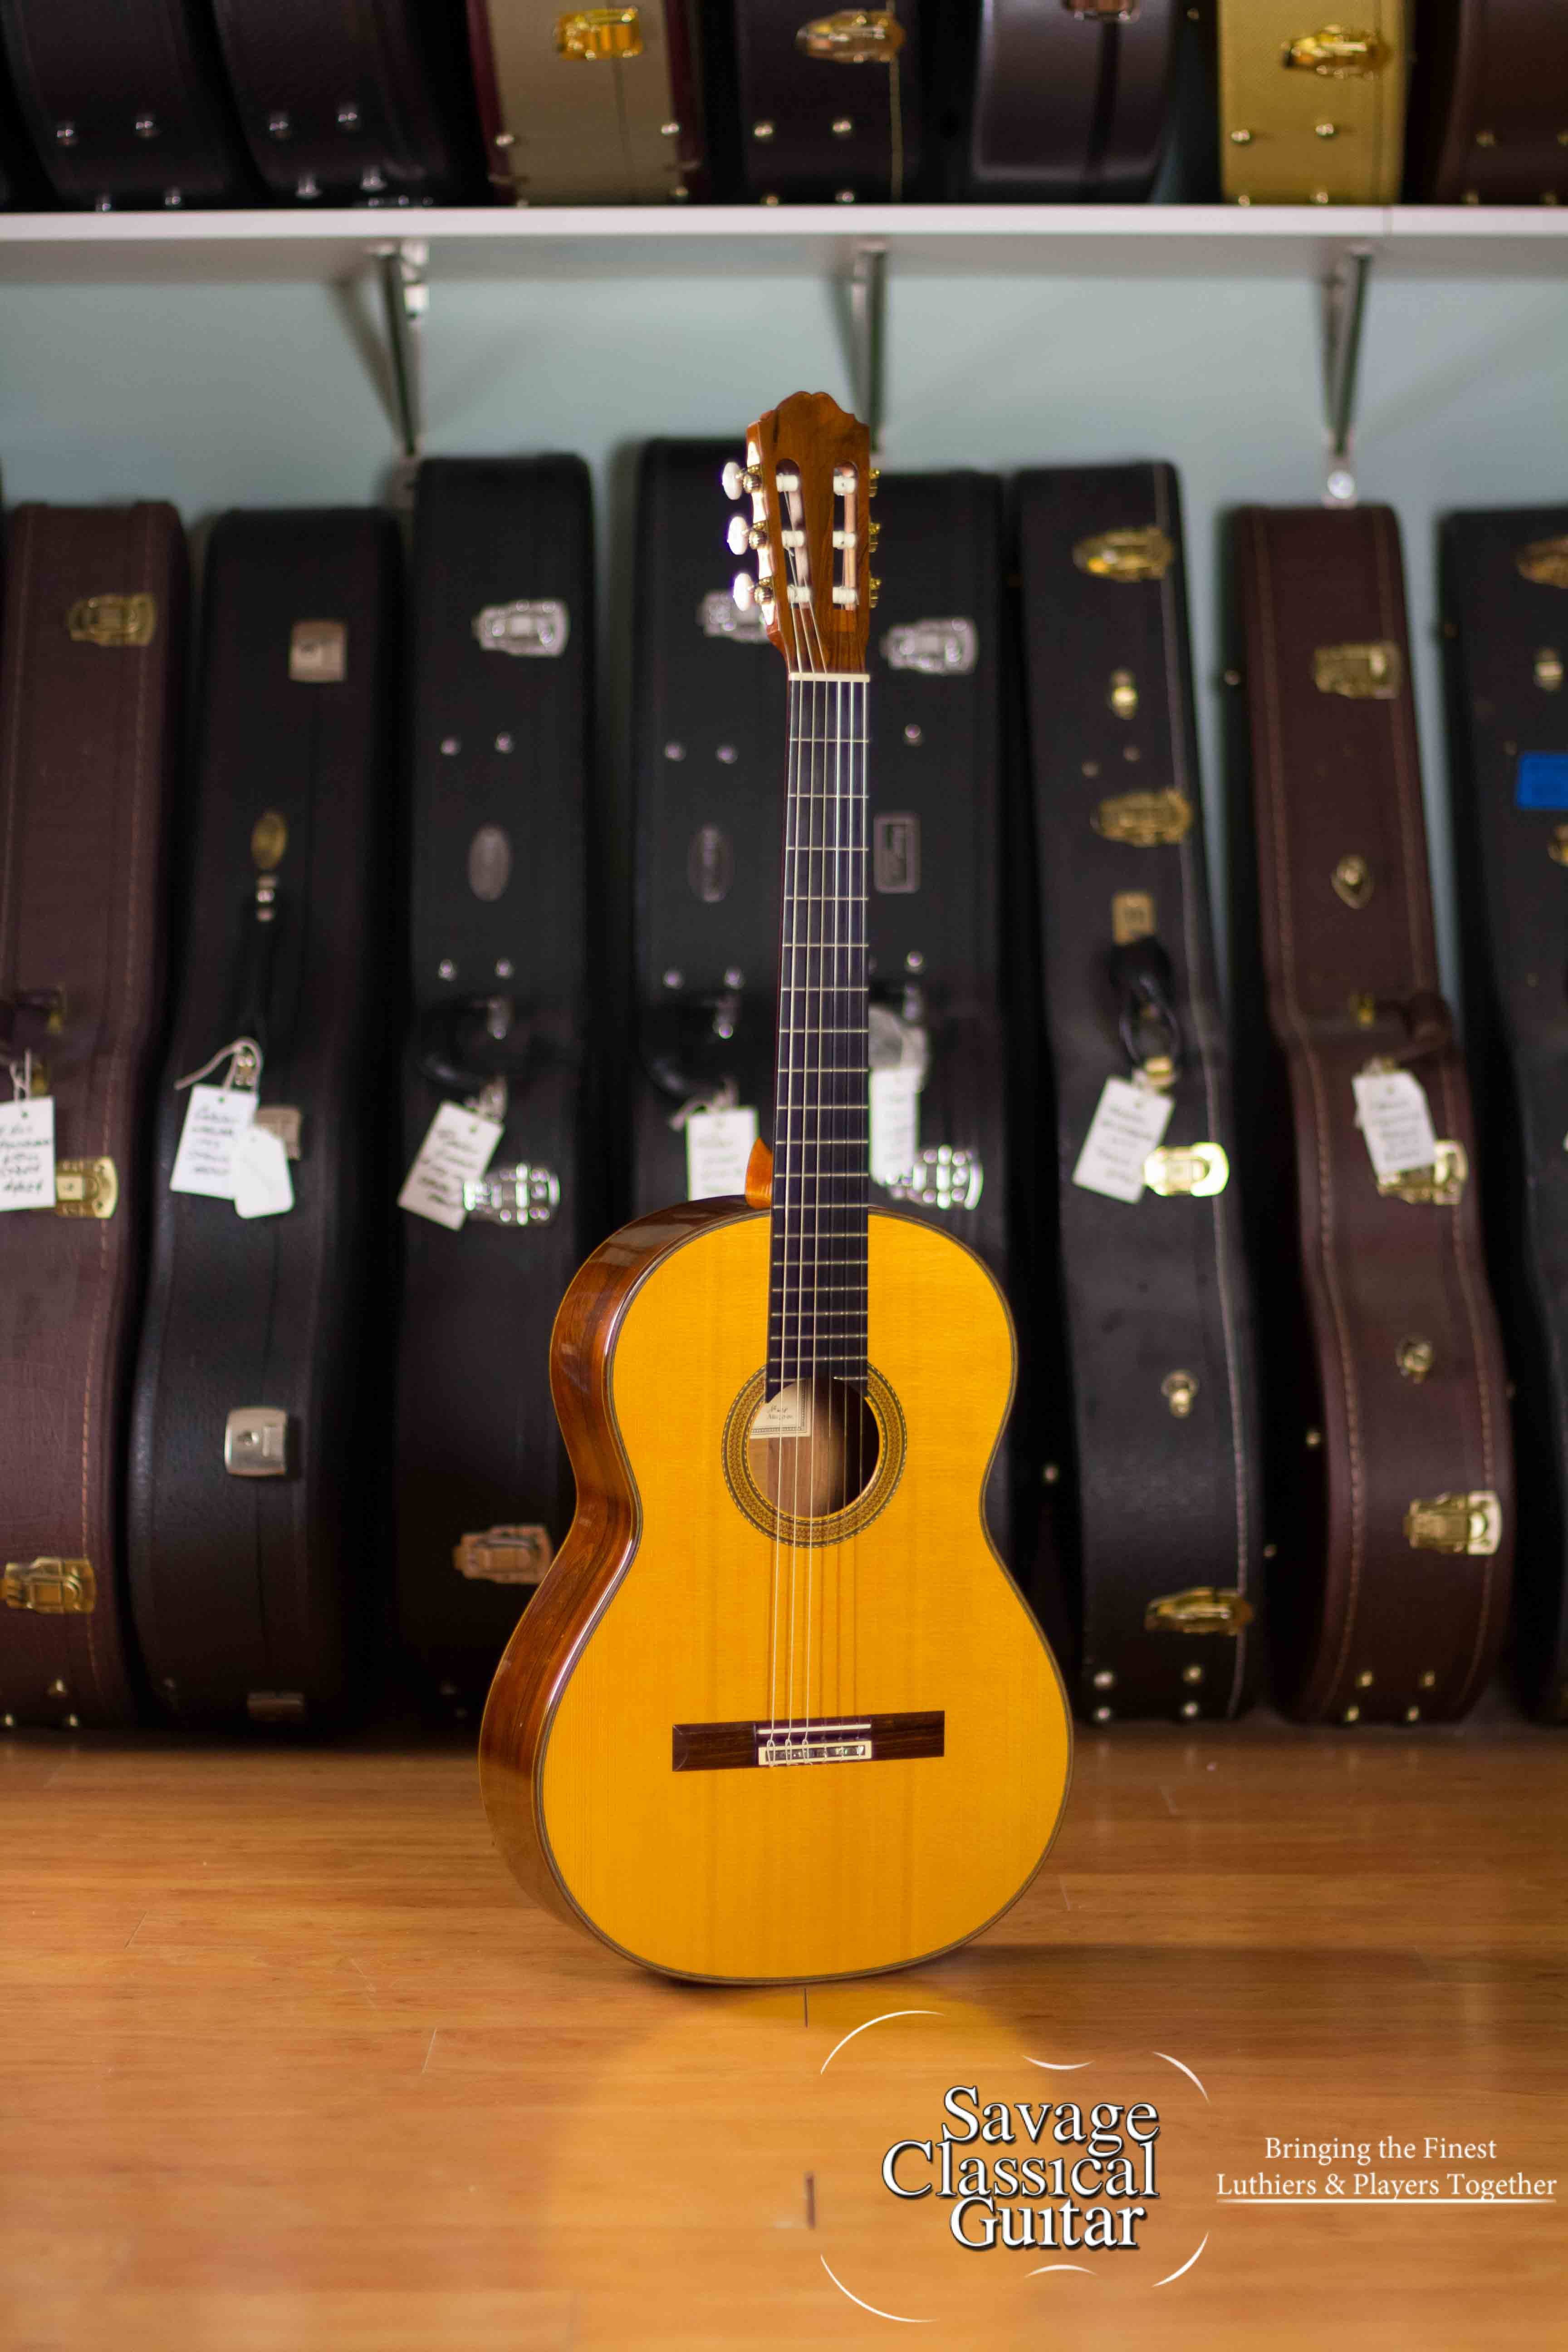 richard brun classical guitar for sale by savage classical guitar. Black Bedroom Furniture Sets. Home Design Ideas